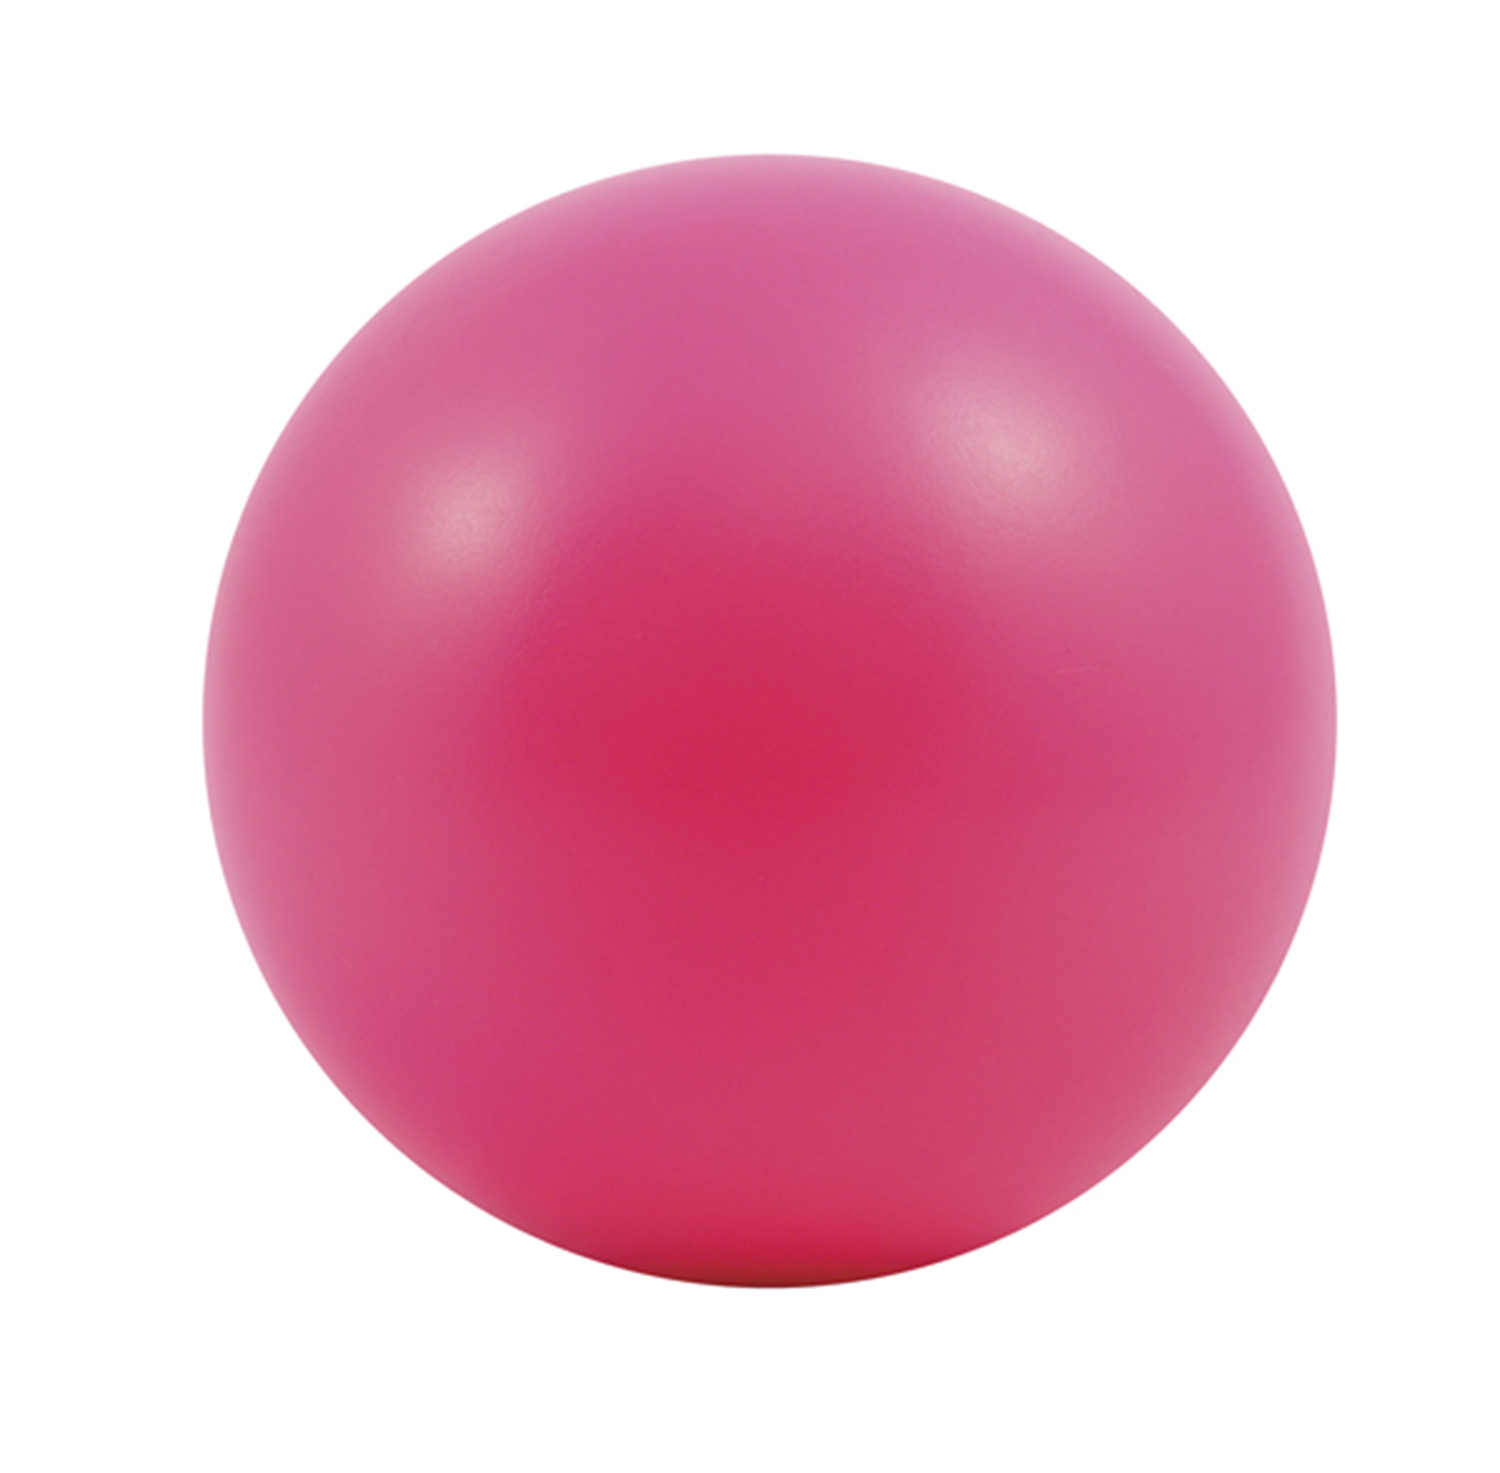 70 Mm Ball Stress Toy Uk Corporate Gifts